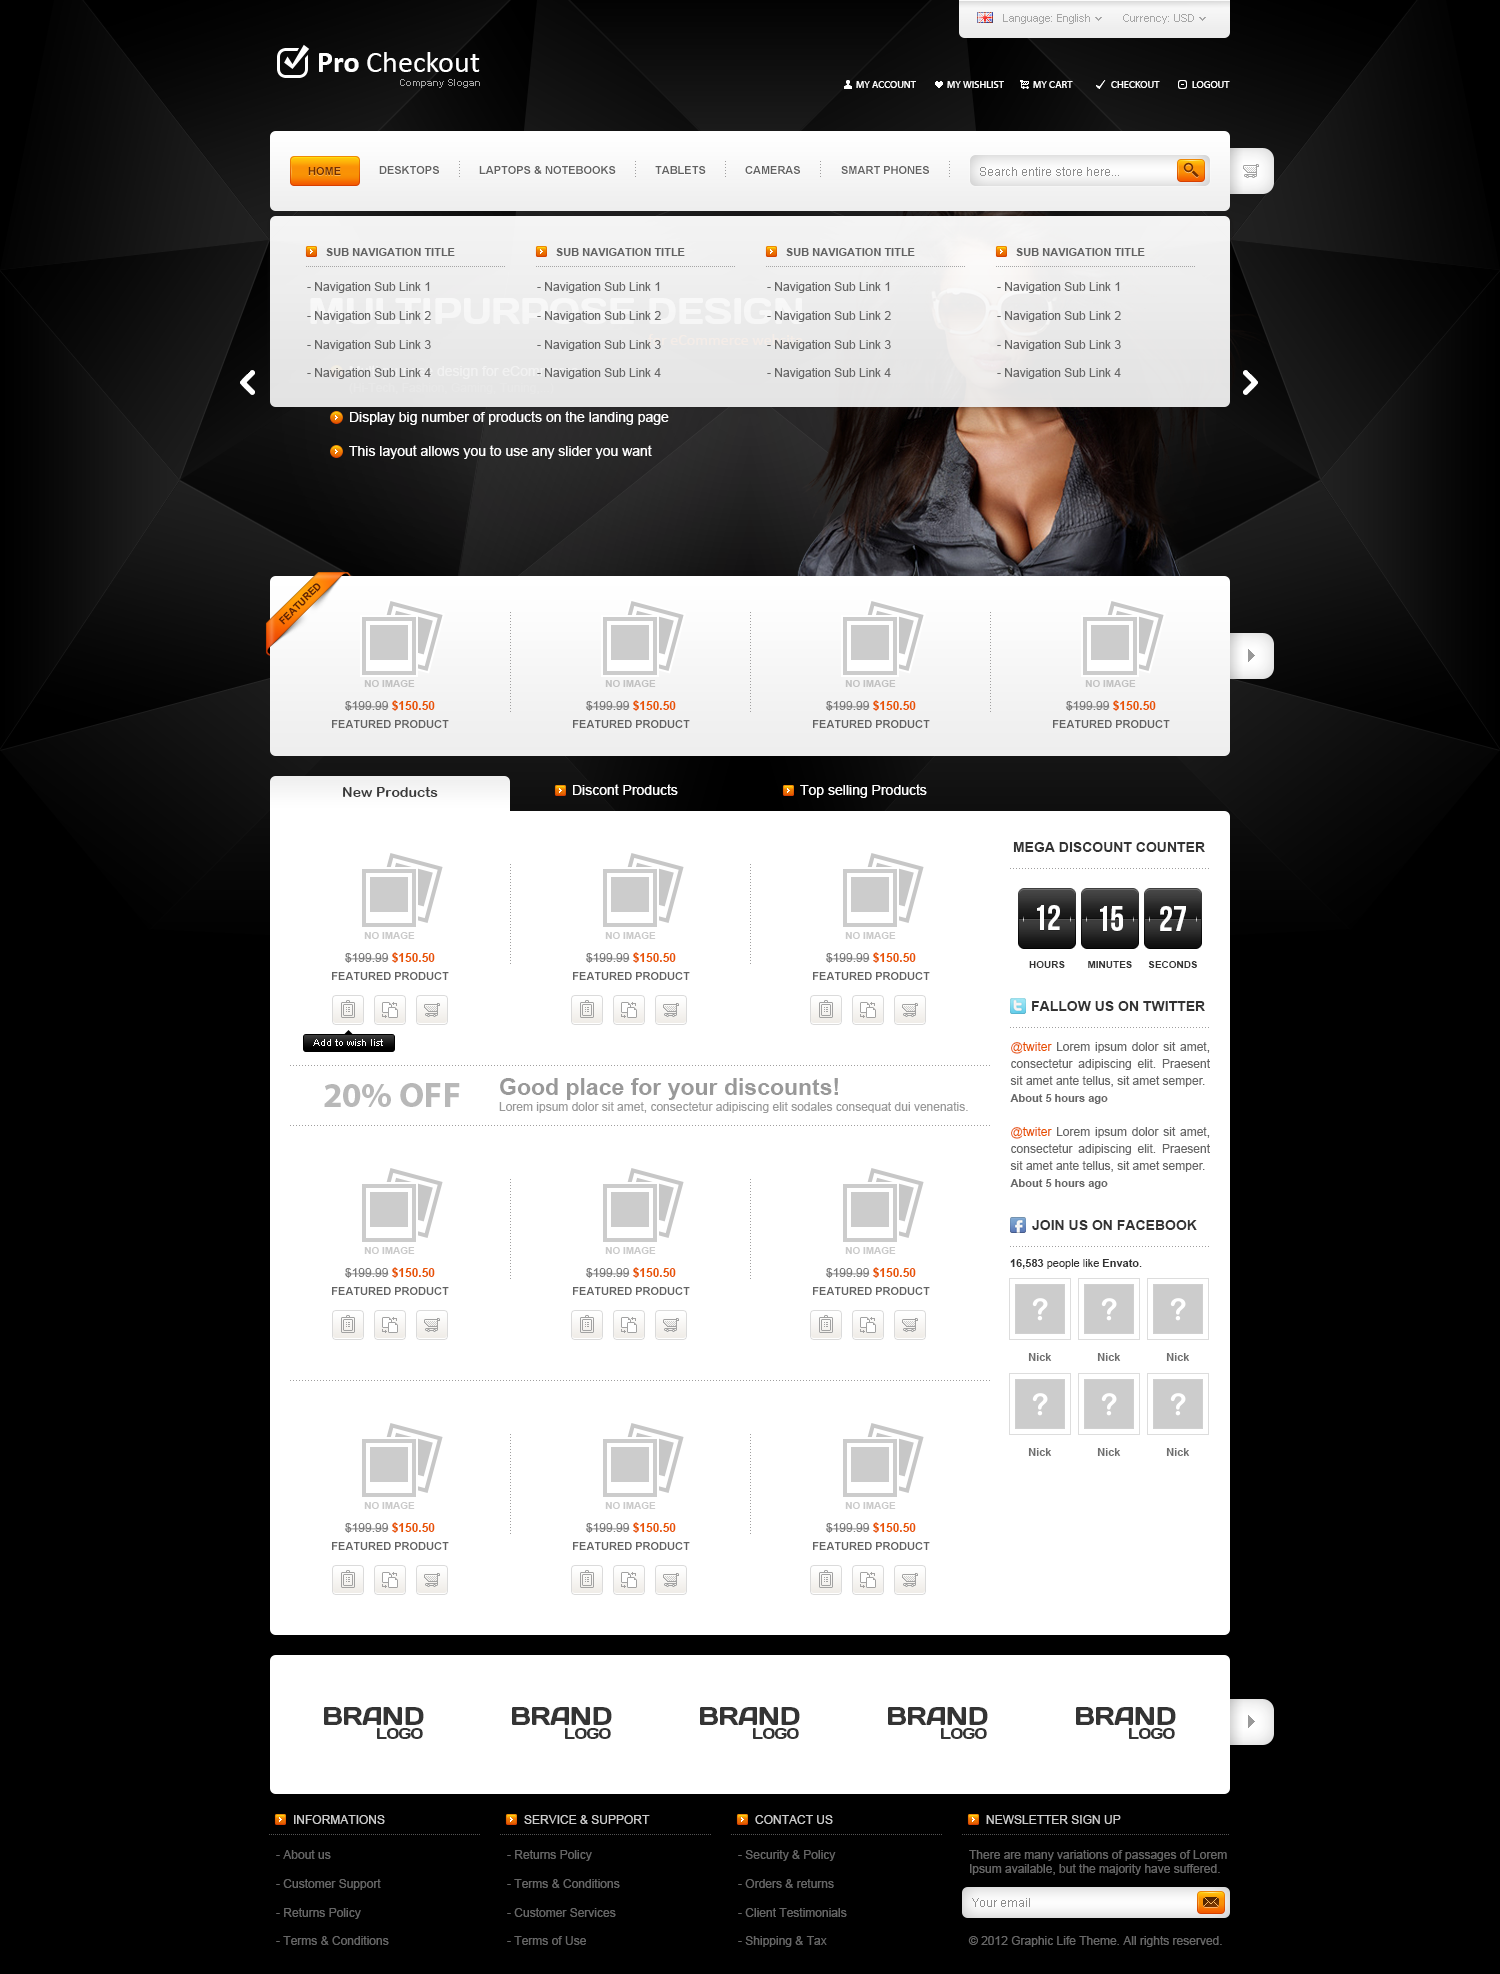 Pro Checkout - eCommerce PSD Template